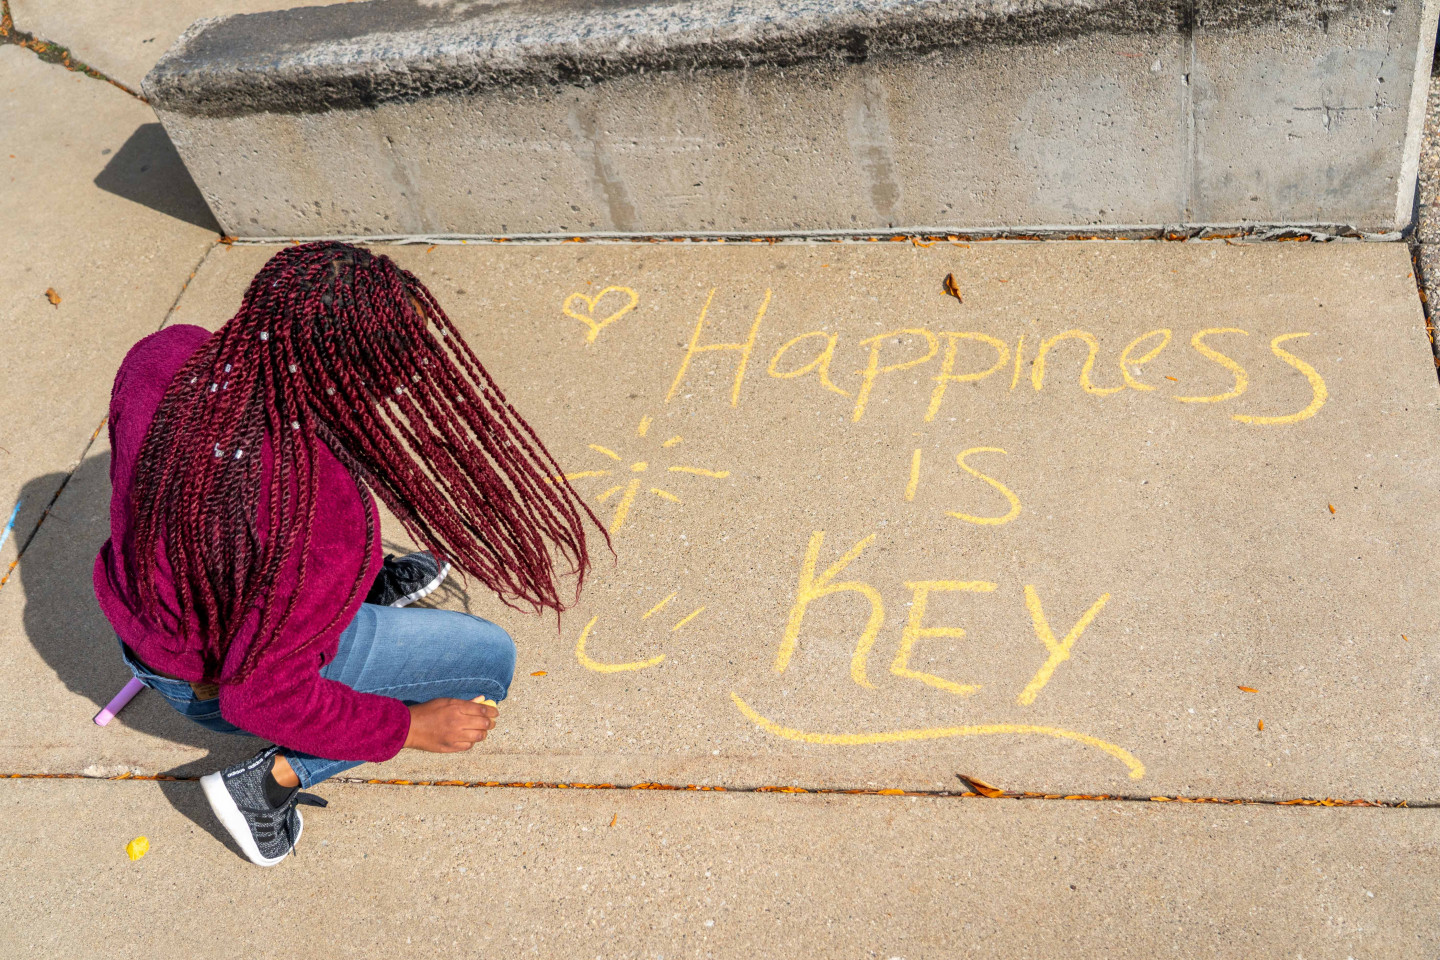 A student writes a positive message on the sidewalk with chalk.